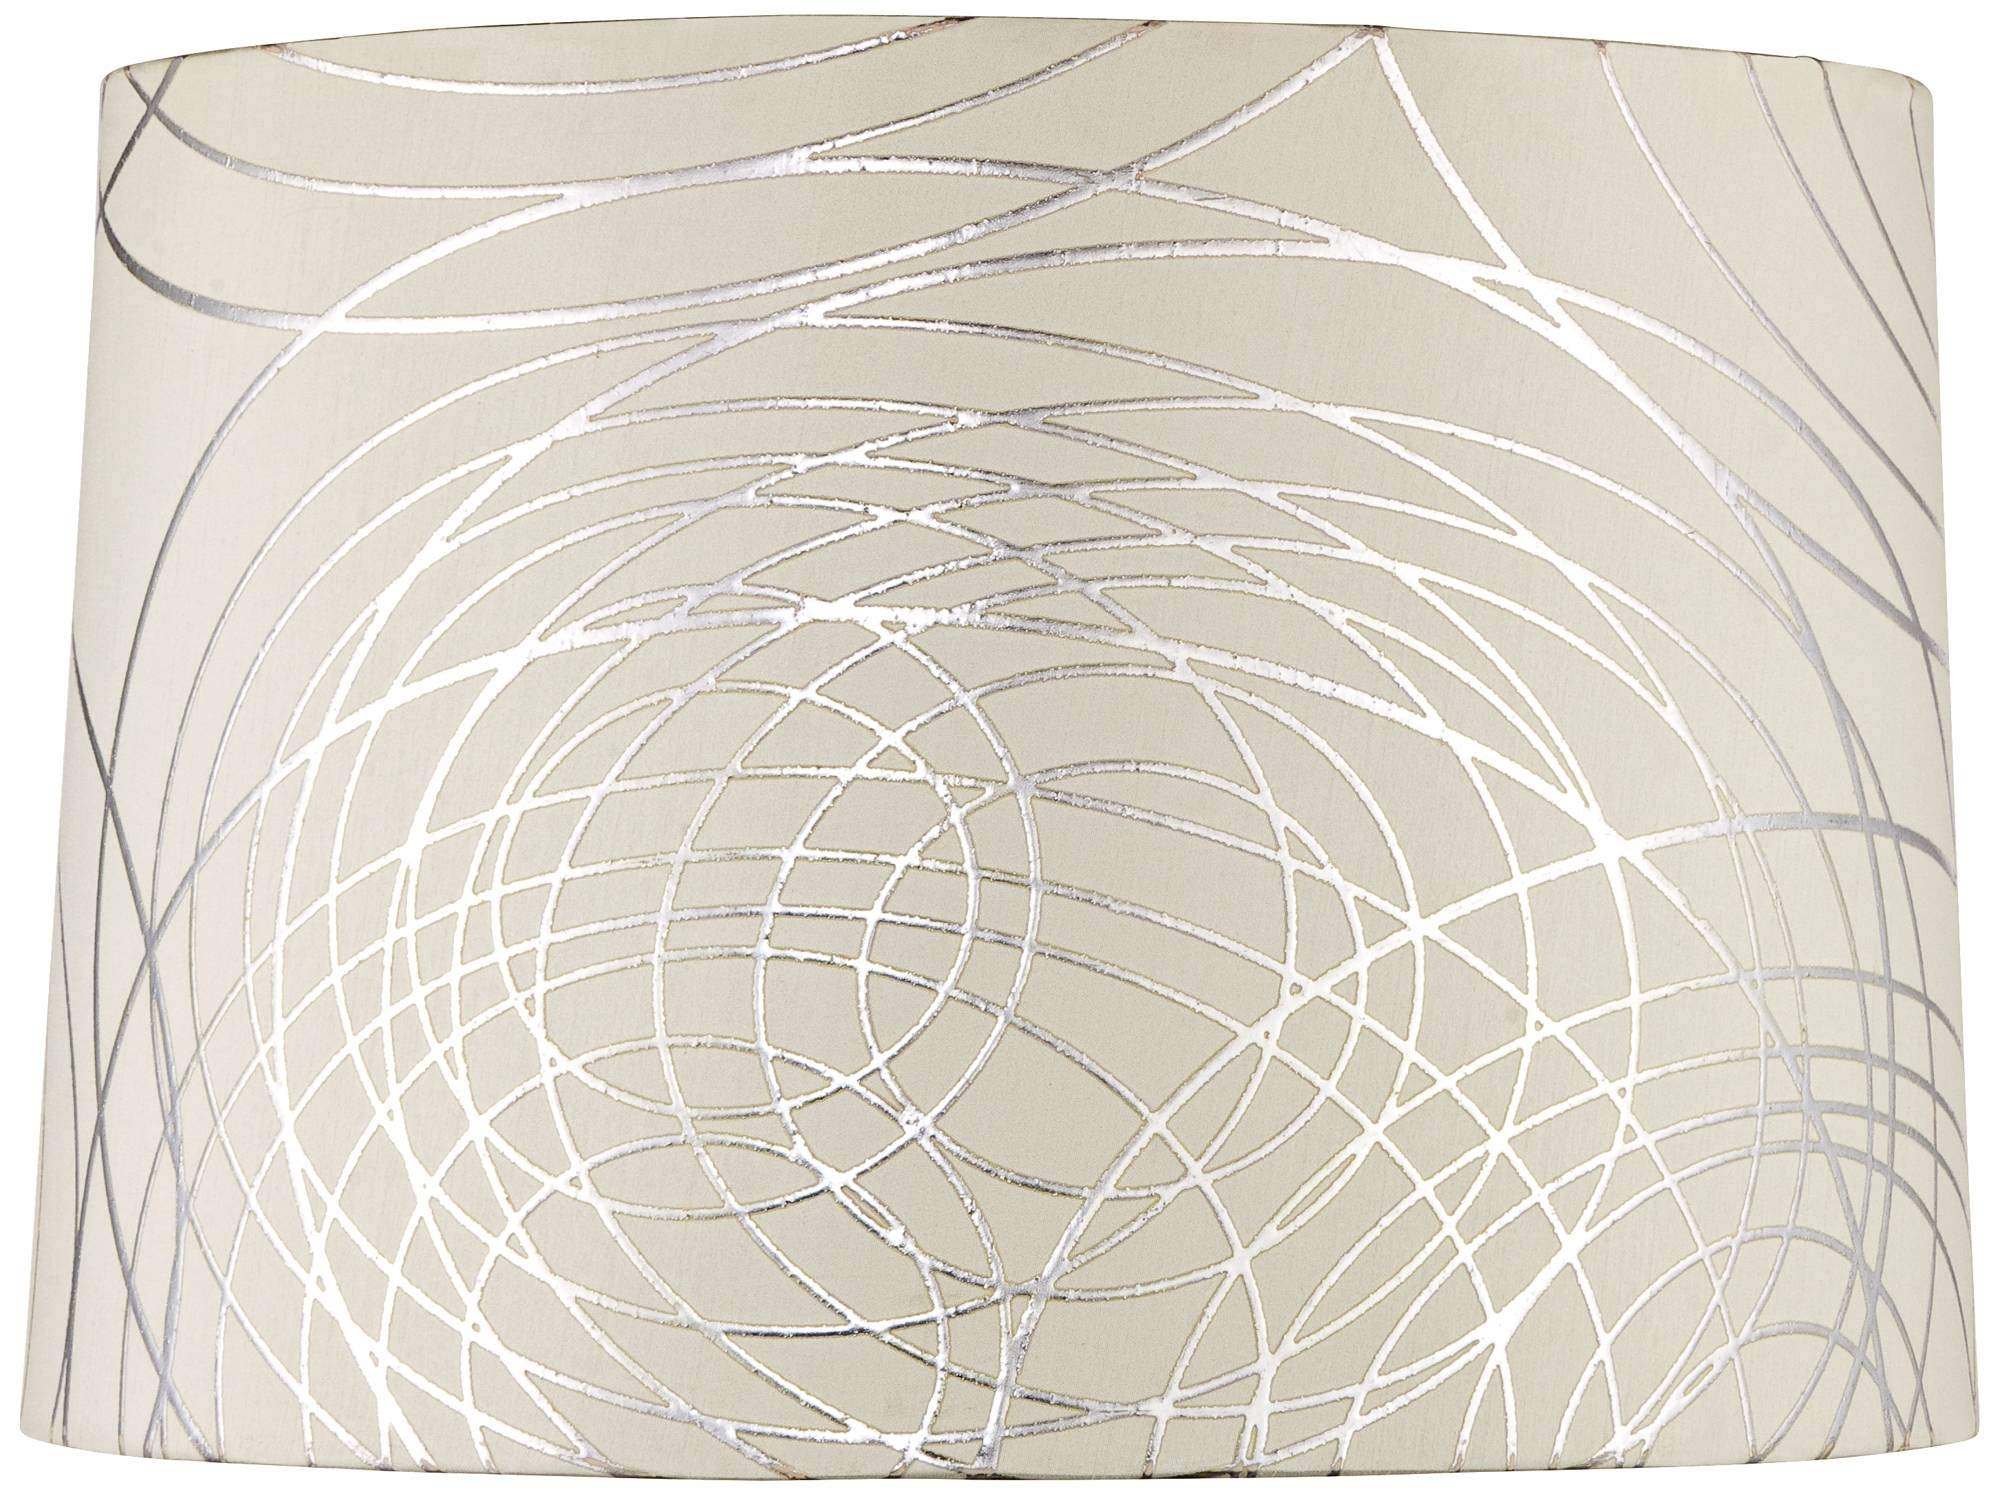 Off White Drum Lamp Shade Modern Silver Circles 15x16x11 (Spider) - Springcrest by Springcrest